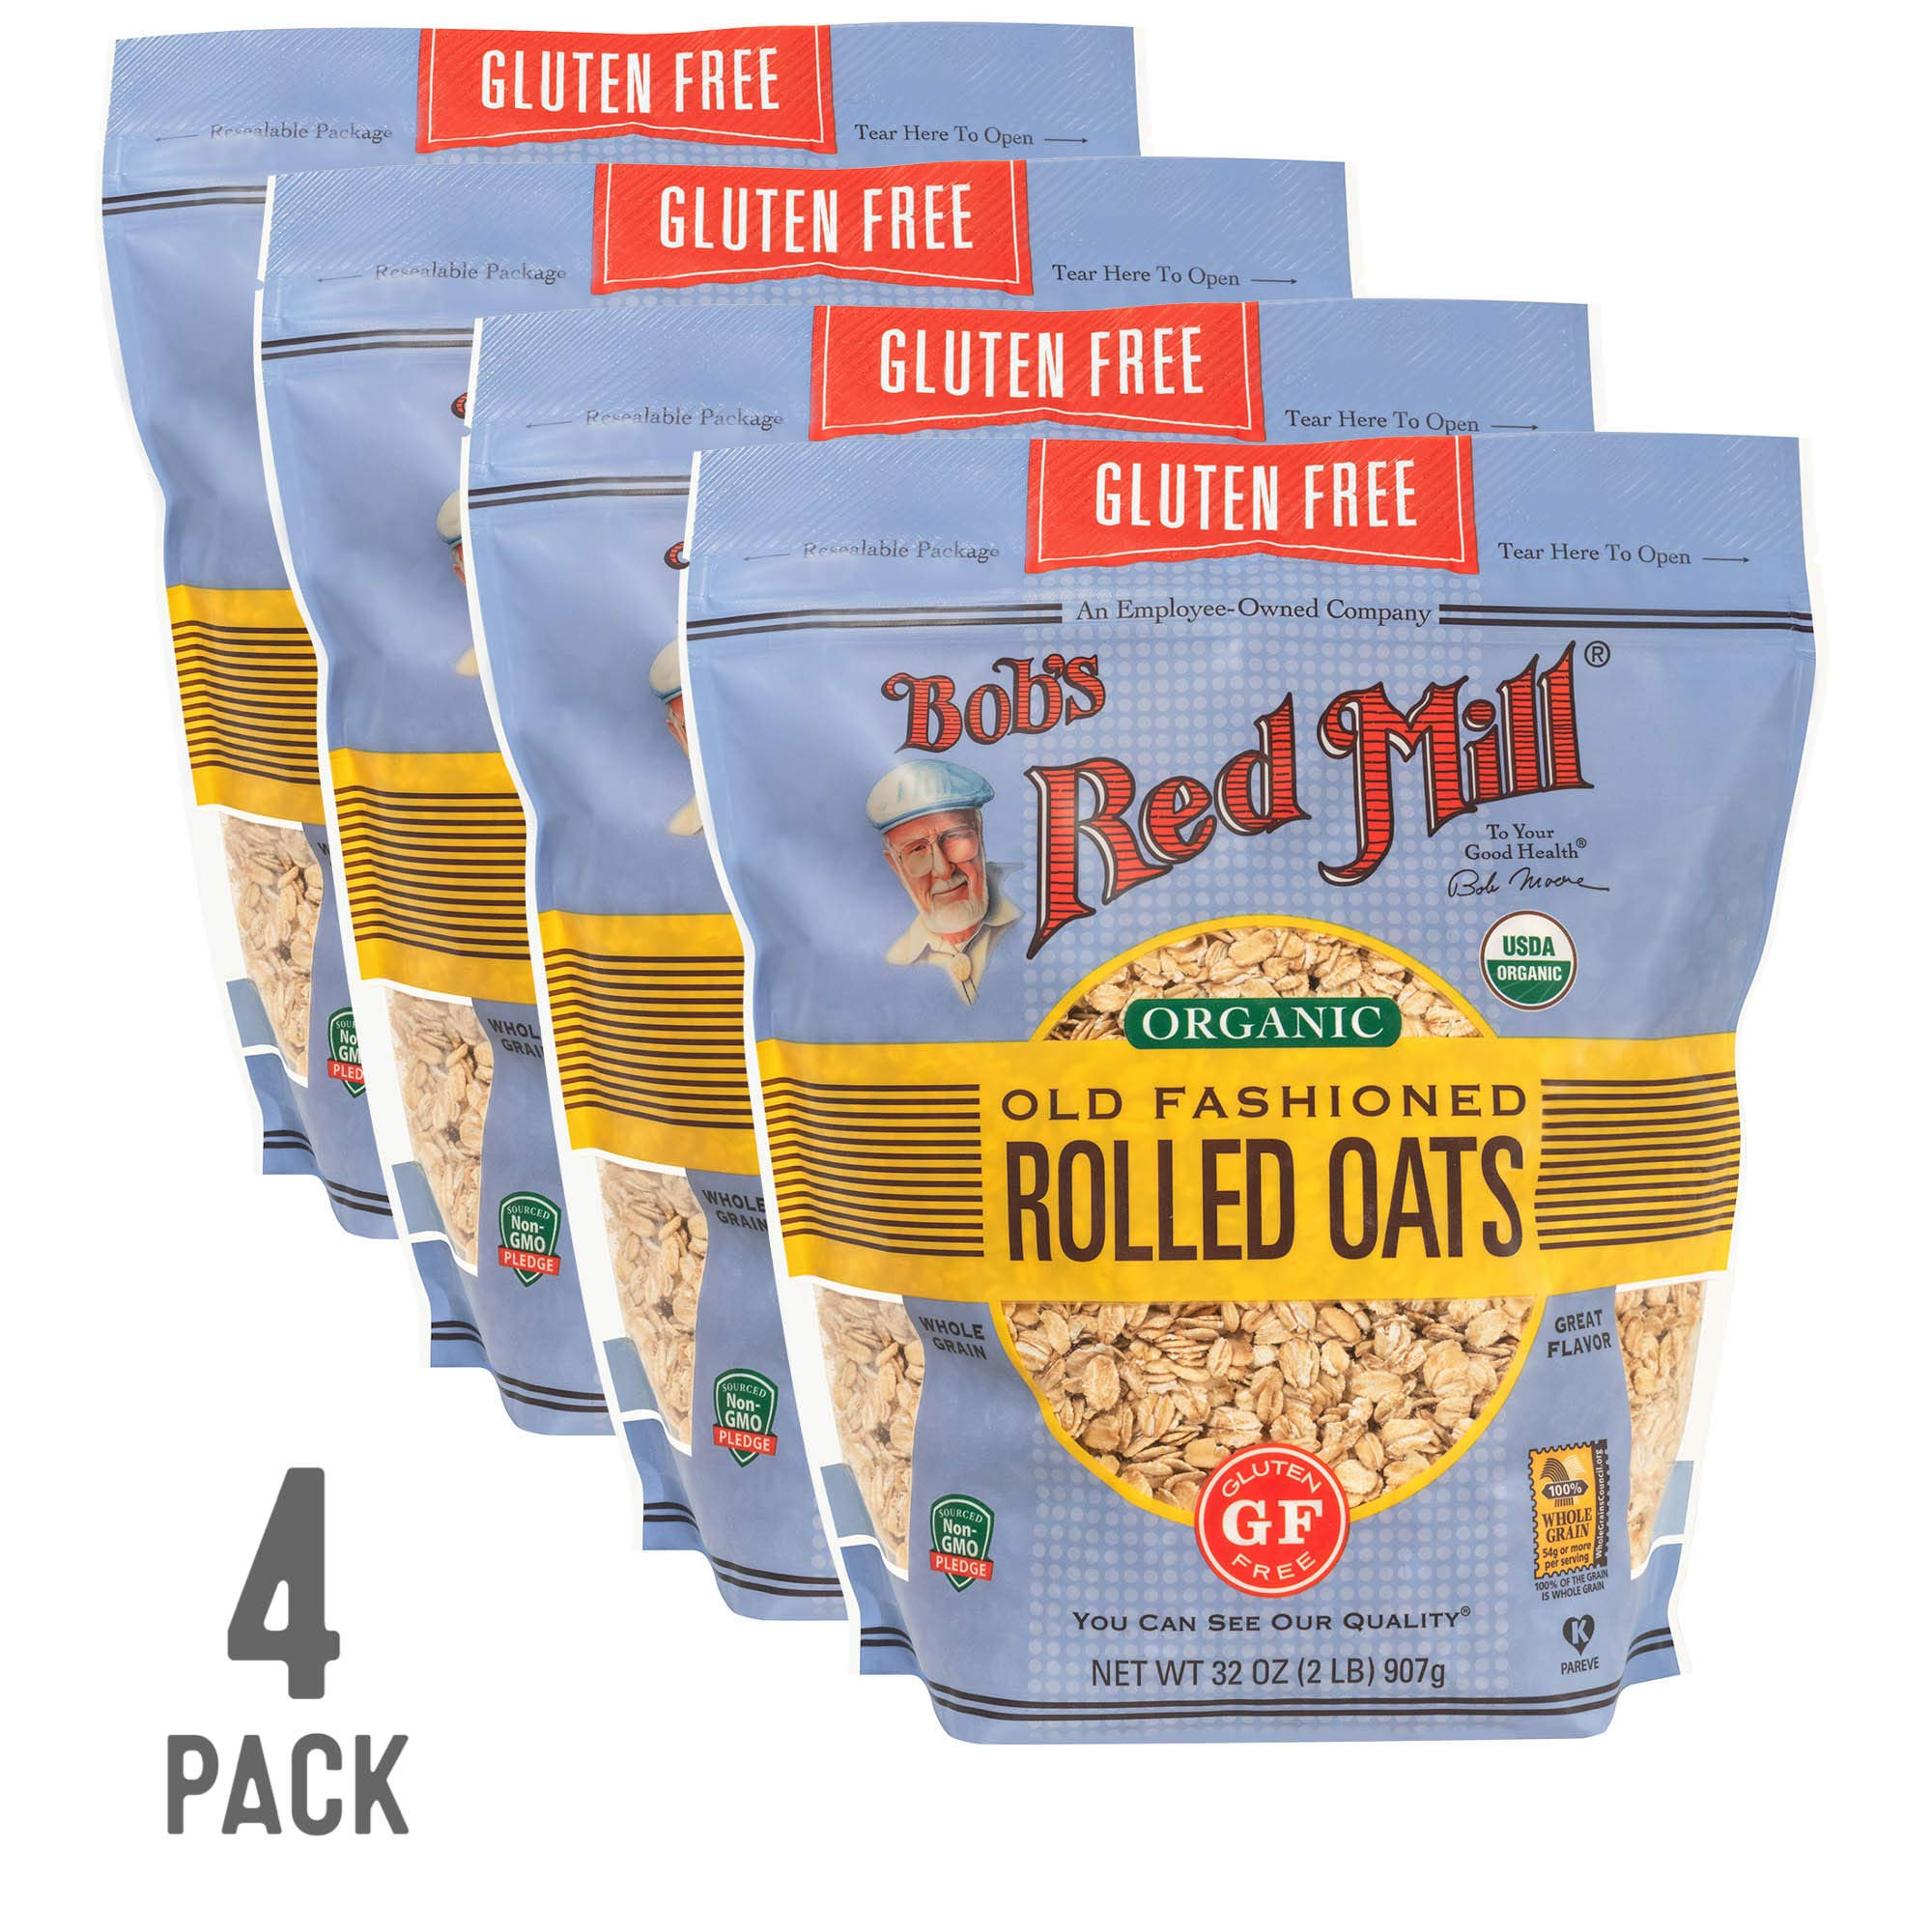 Bob's Red Mill Resealable Gluten Free Organic Old Fashioned Rolled Oats, 32 Oz (4 Pack) by Bob's Red Mill